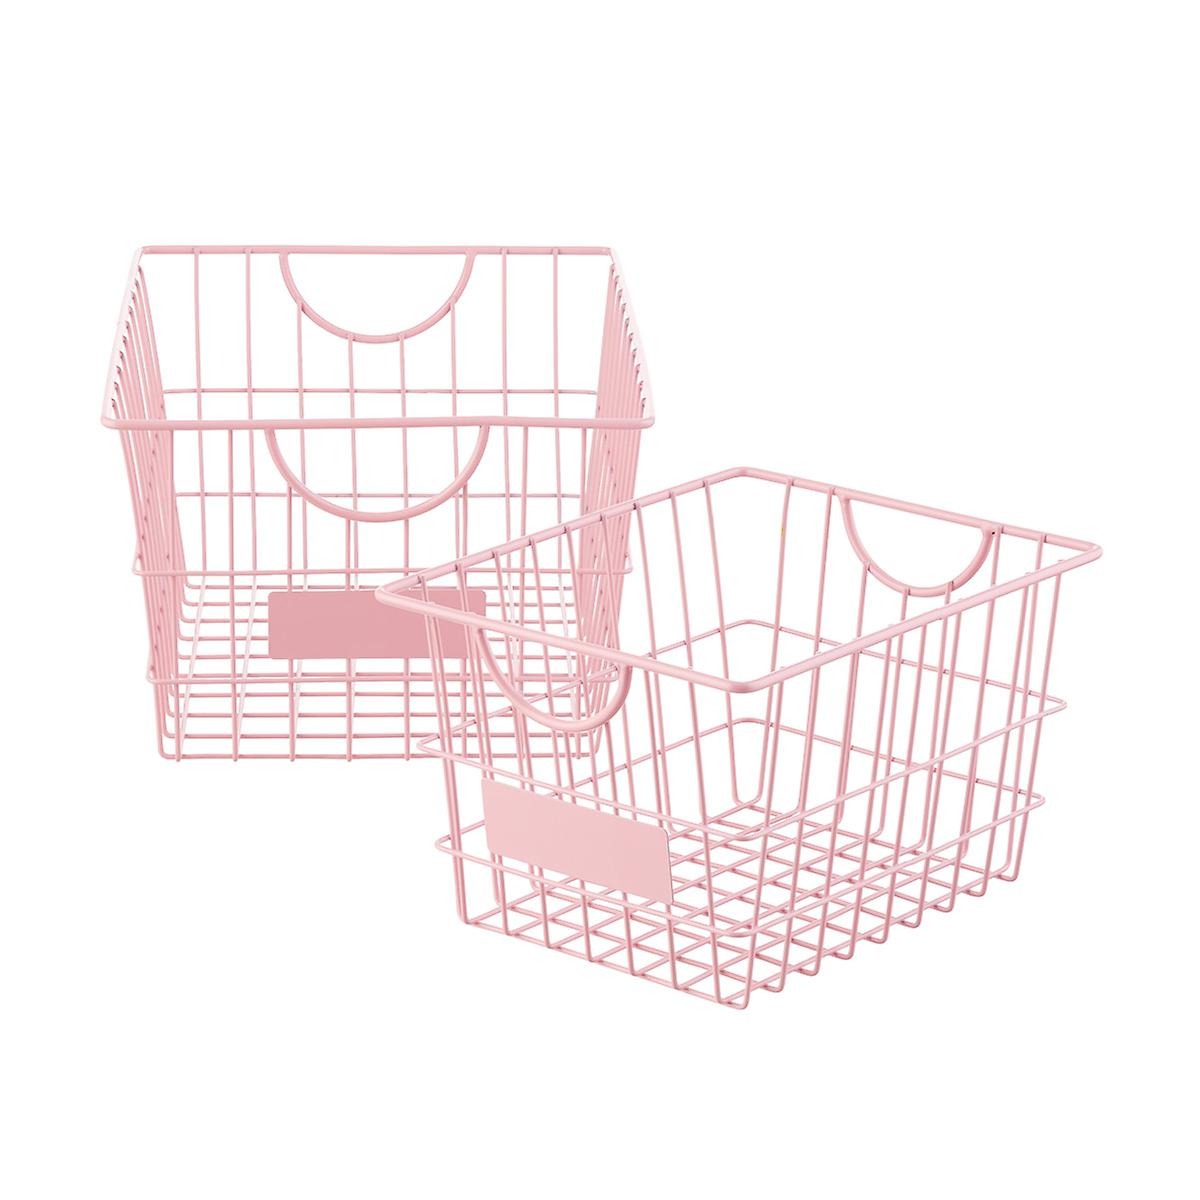 Blush Wire Storage Baskets with Handles